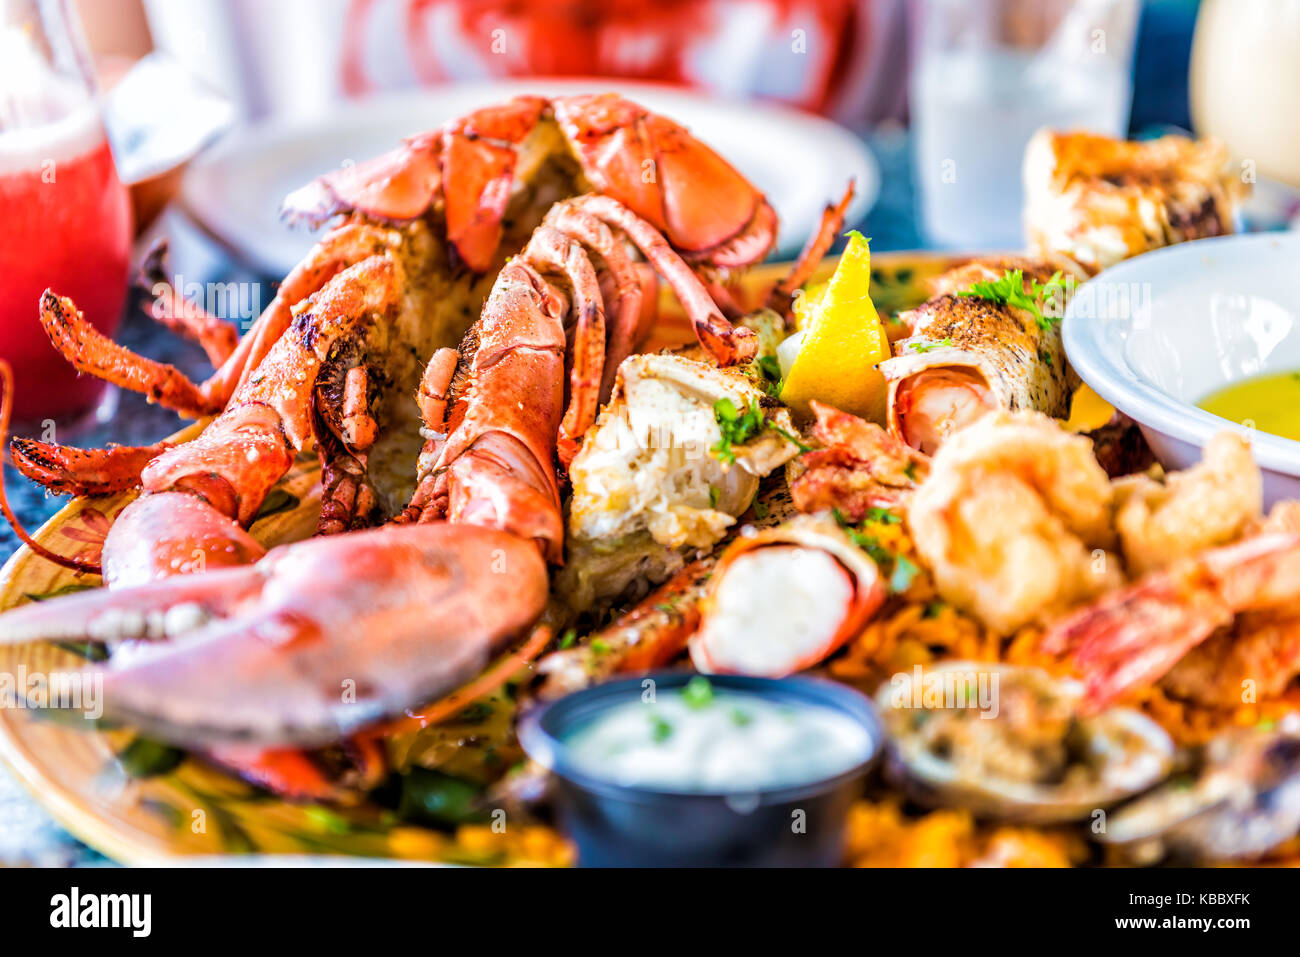 Macro closeup of red lobsters, shrimp, crab, oyster and seafood platter on plate in restaurant with tartar sauce - Stock Image